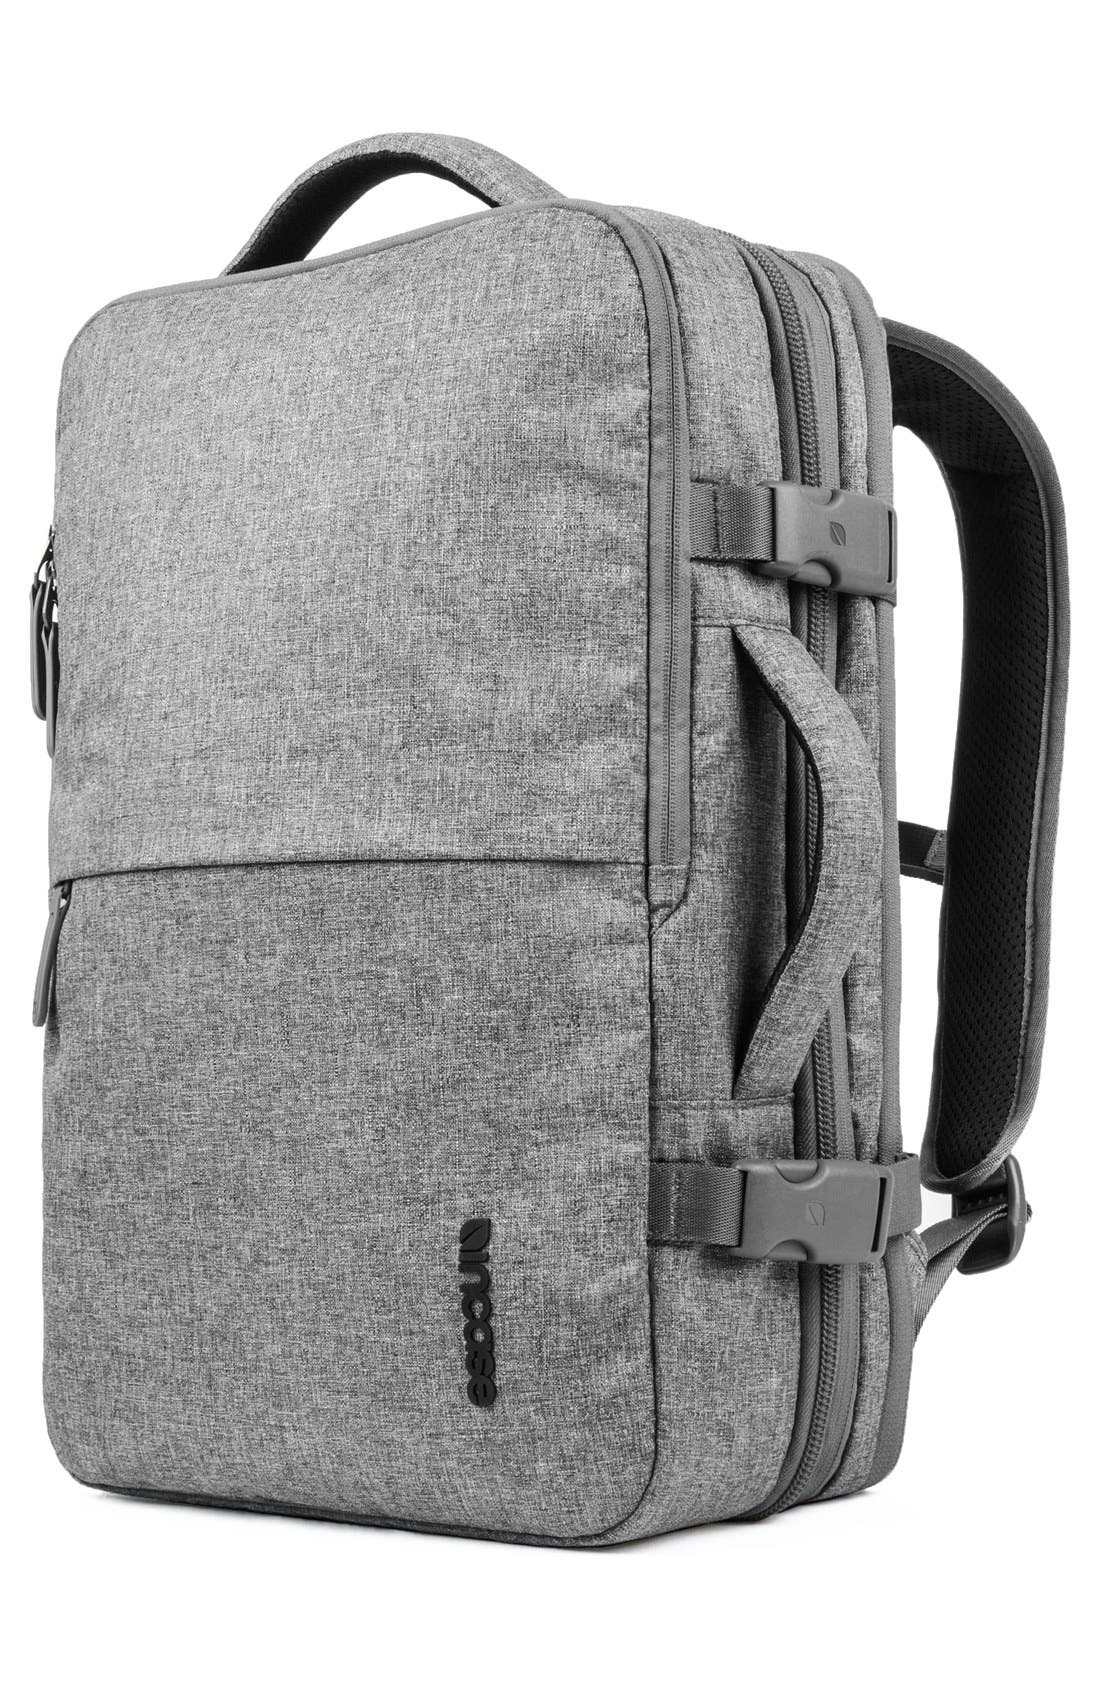 EO Travel Backpack,                             Alternate thumbnail 6, color,                             HEATHER GREY